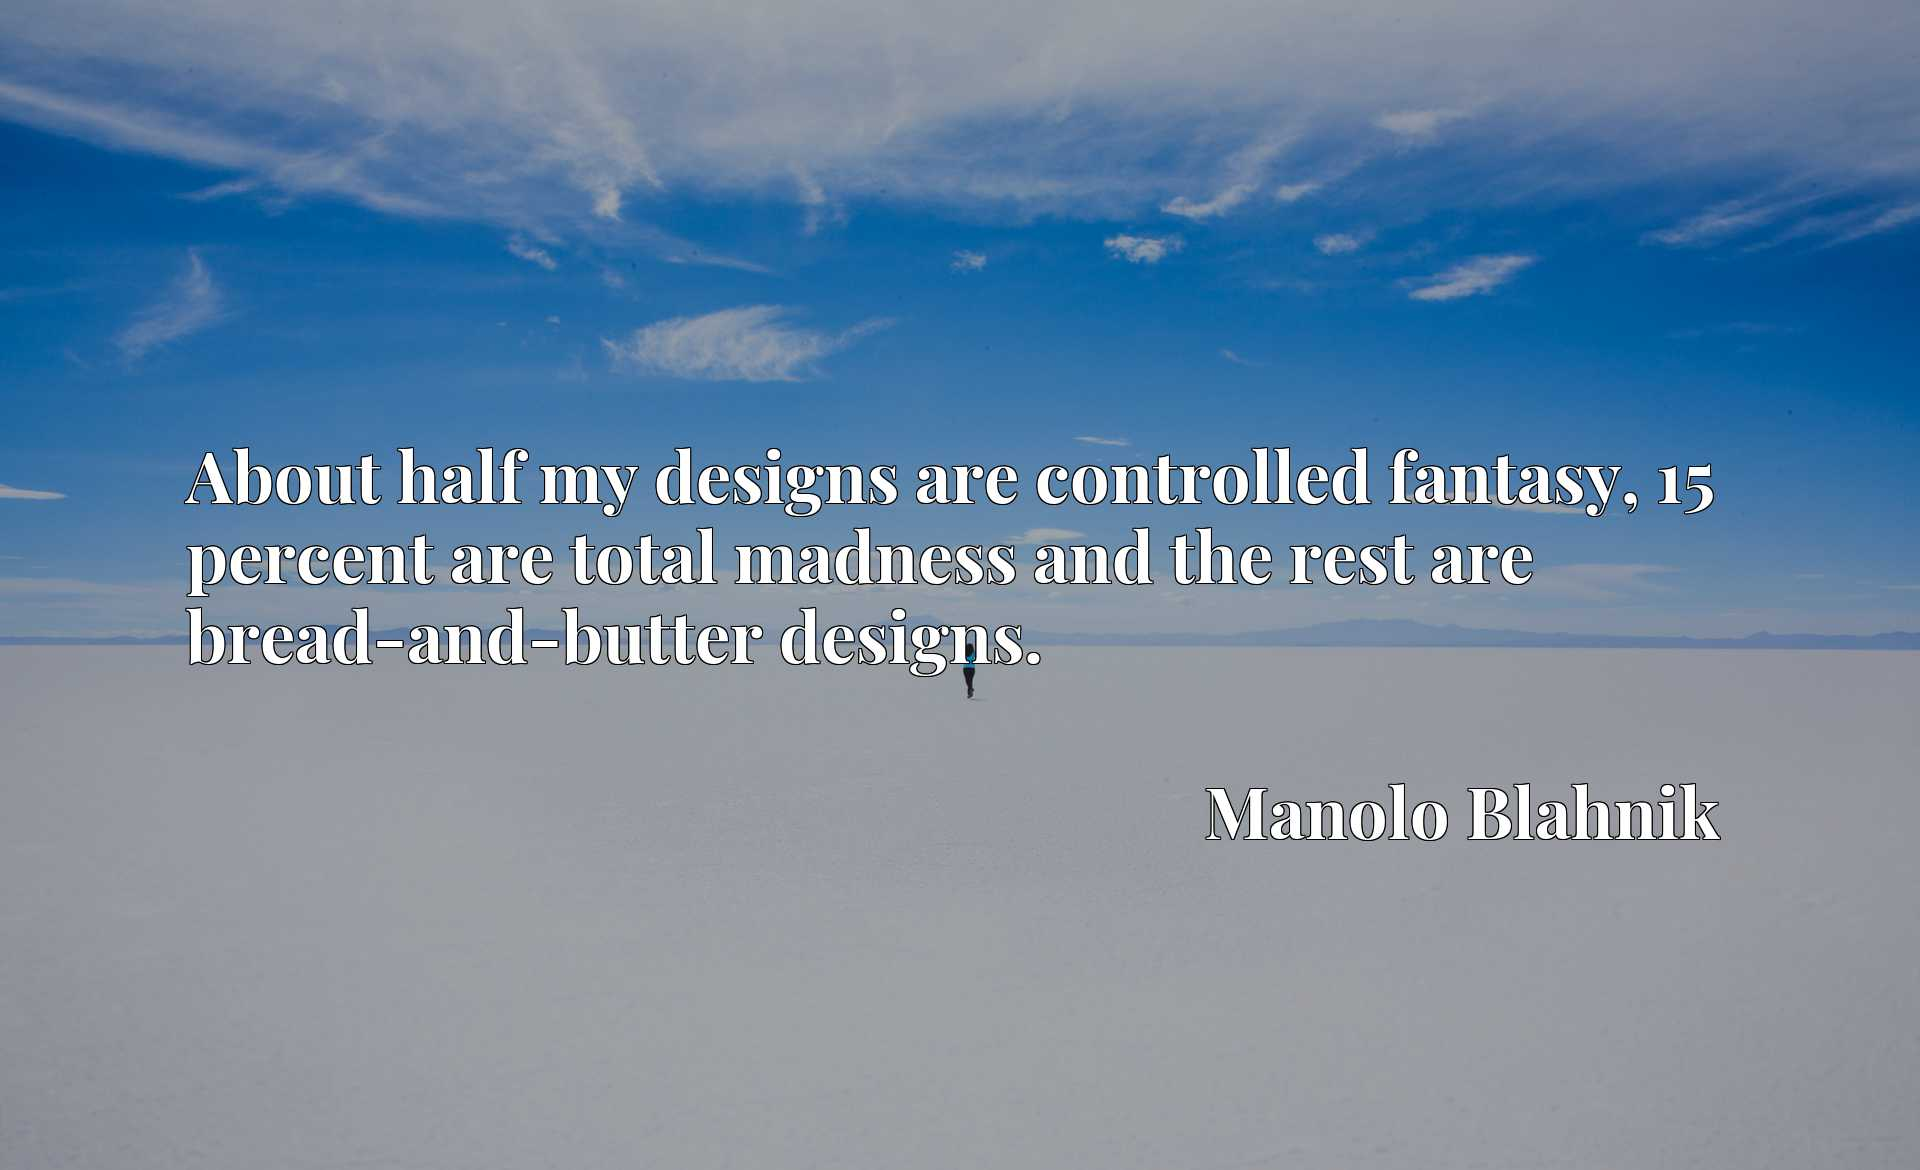 About half my designs are controlled fantasy, 15 percent are total madness and the rest are bread-and-butter designs.